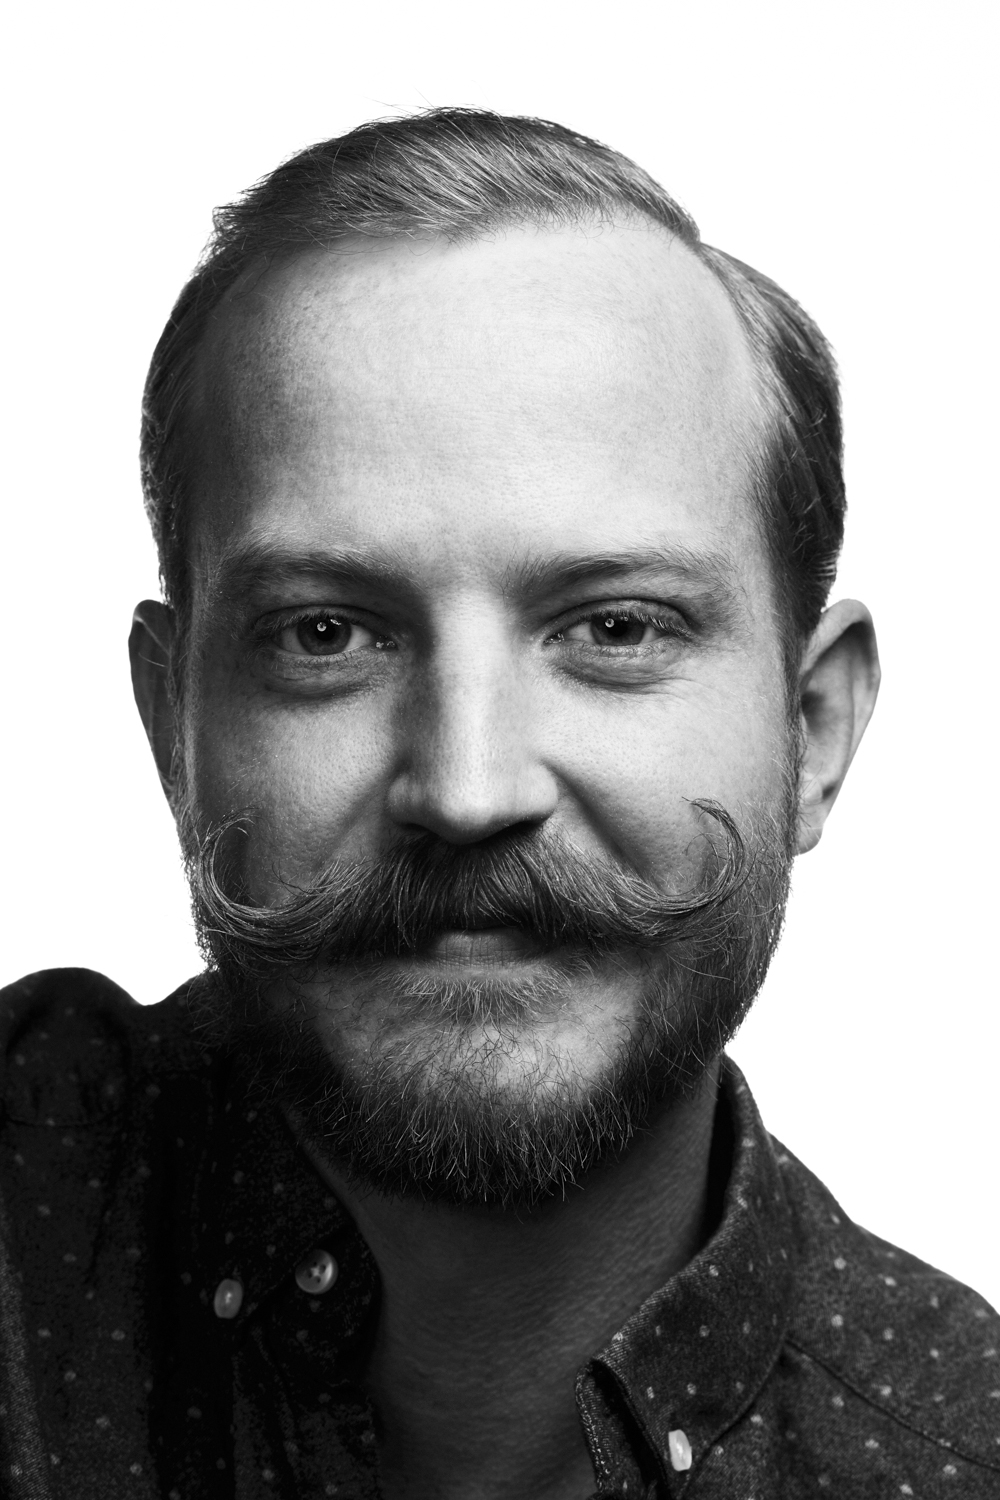 Man on white background, studio photography, black and white portraits, hipster with mustache